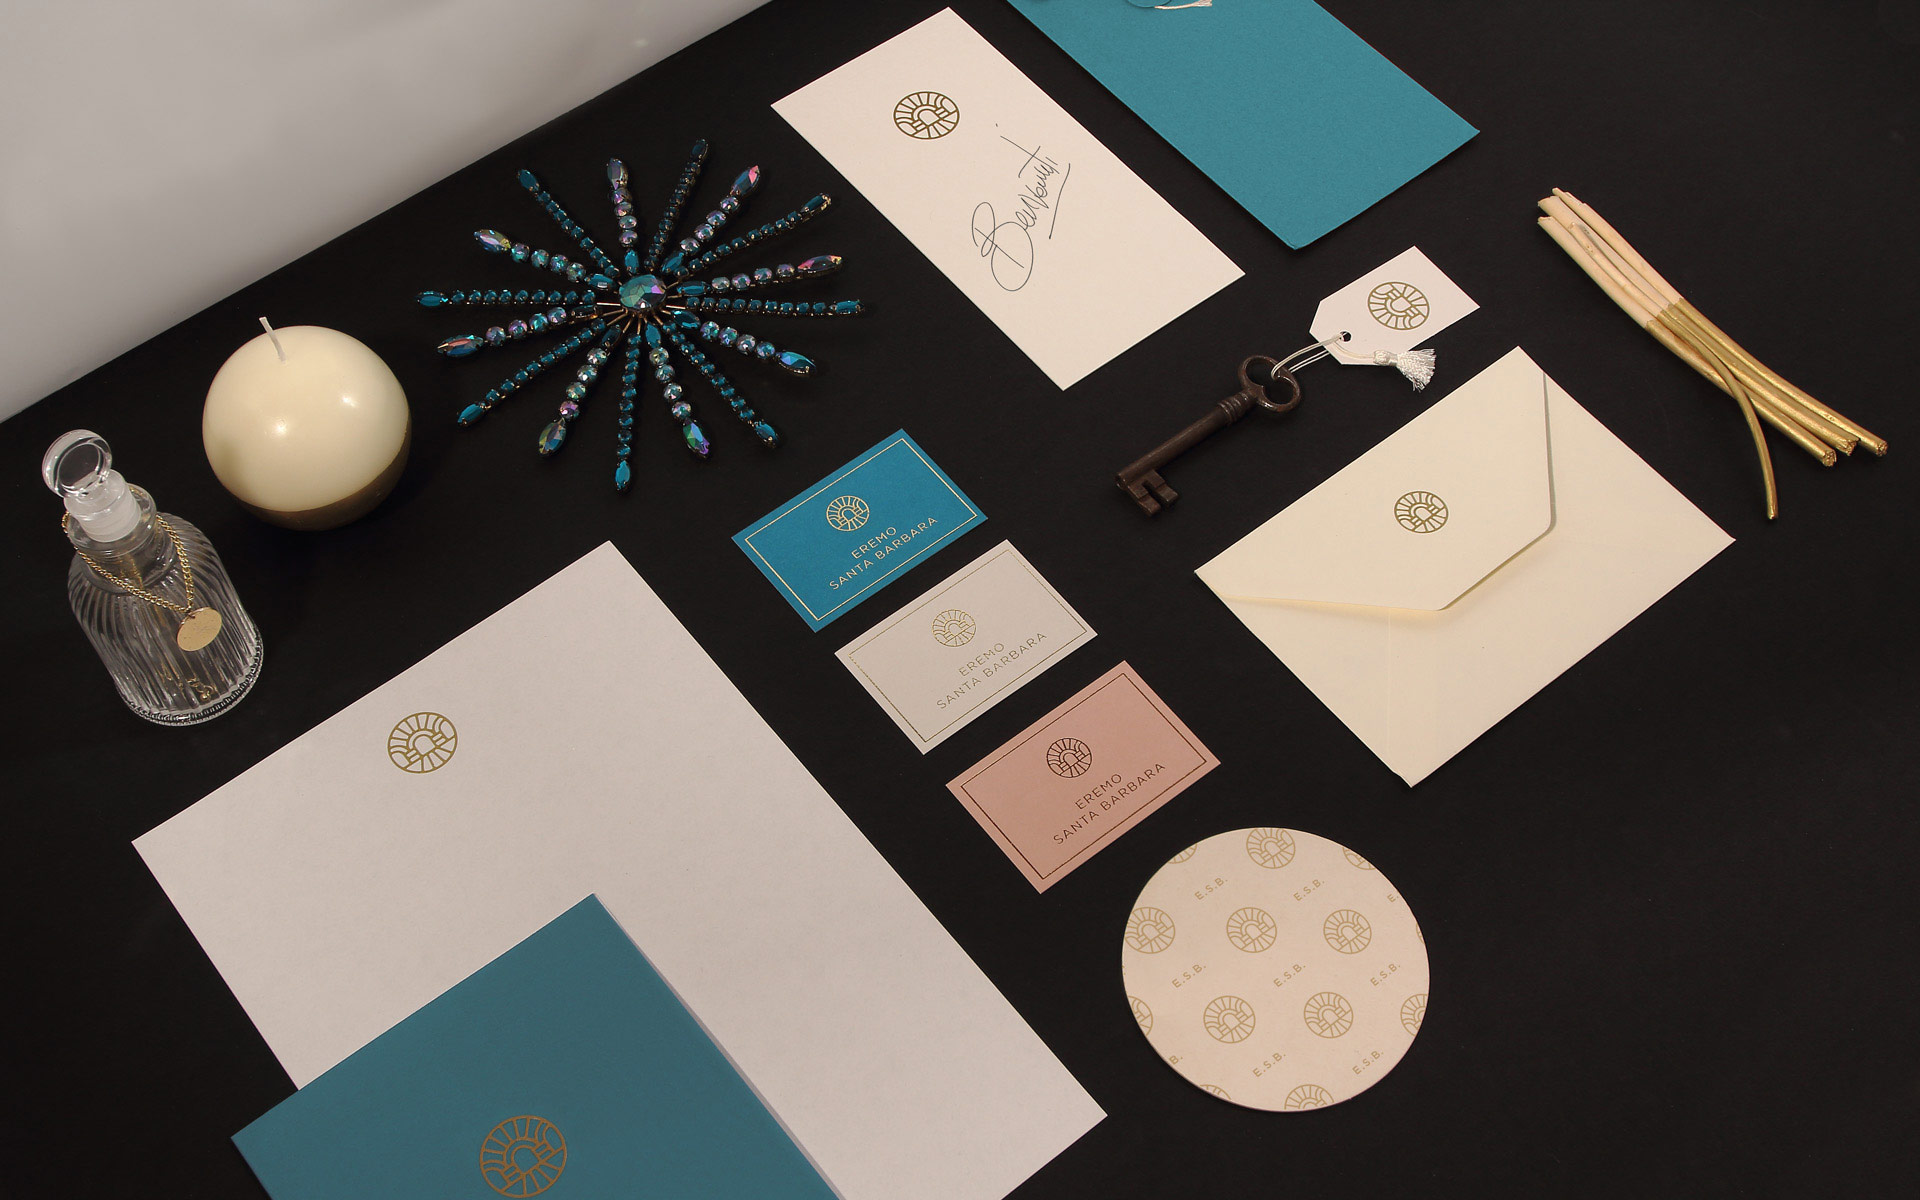 Eremo Santa Barbara Stationery